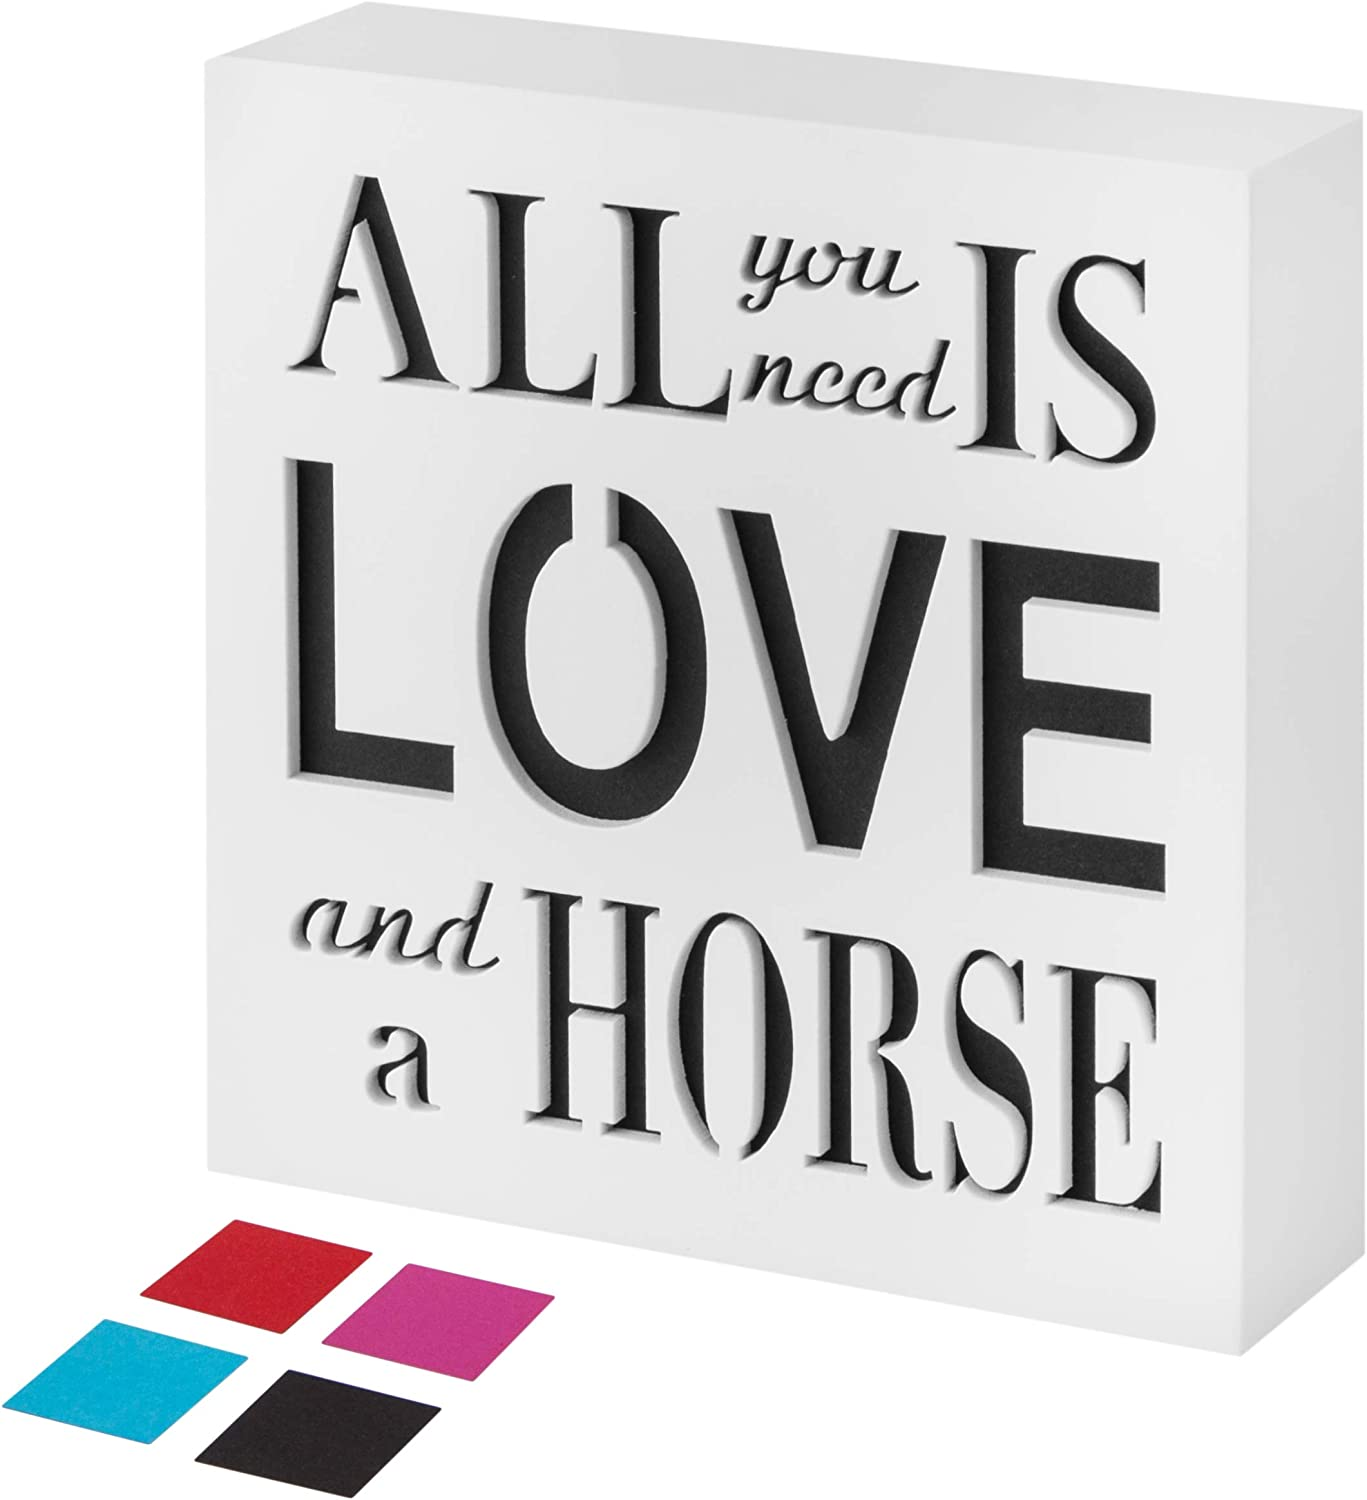 KAUZA Horse Gifts Decor Kitchen Signs Home Accessories